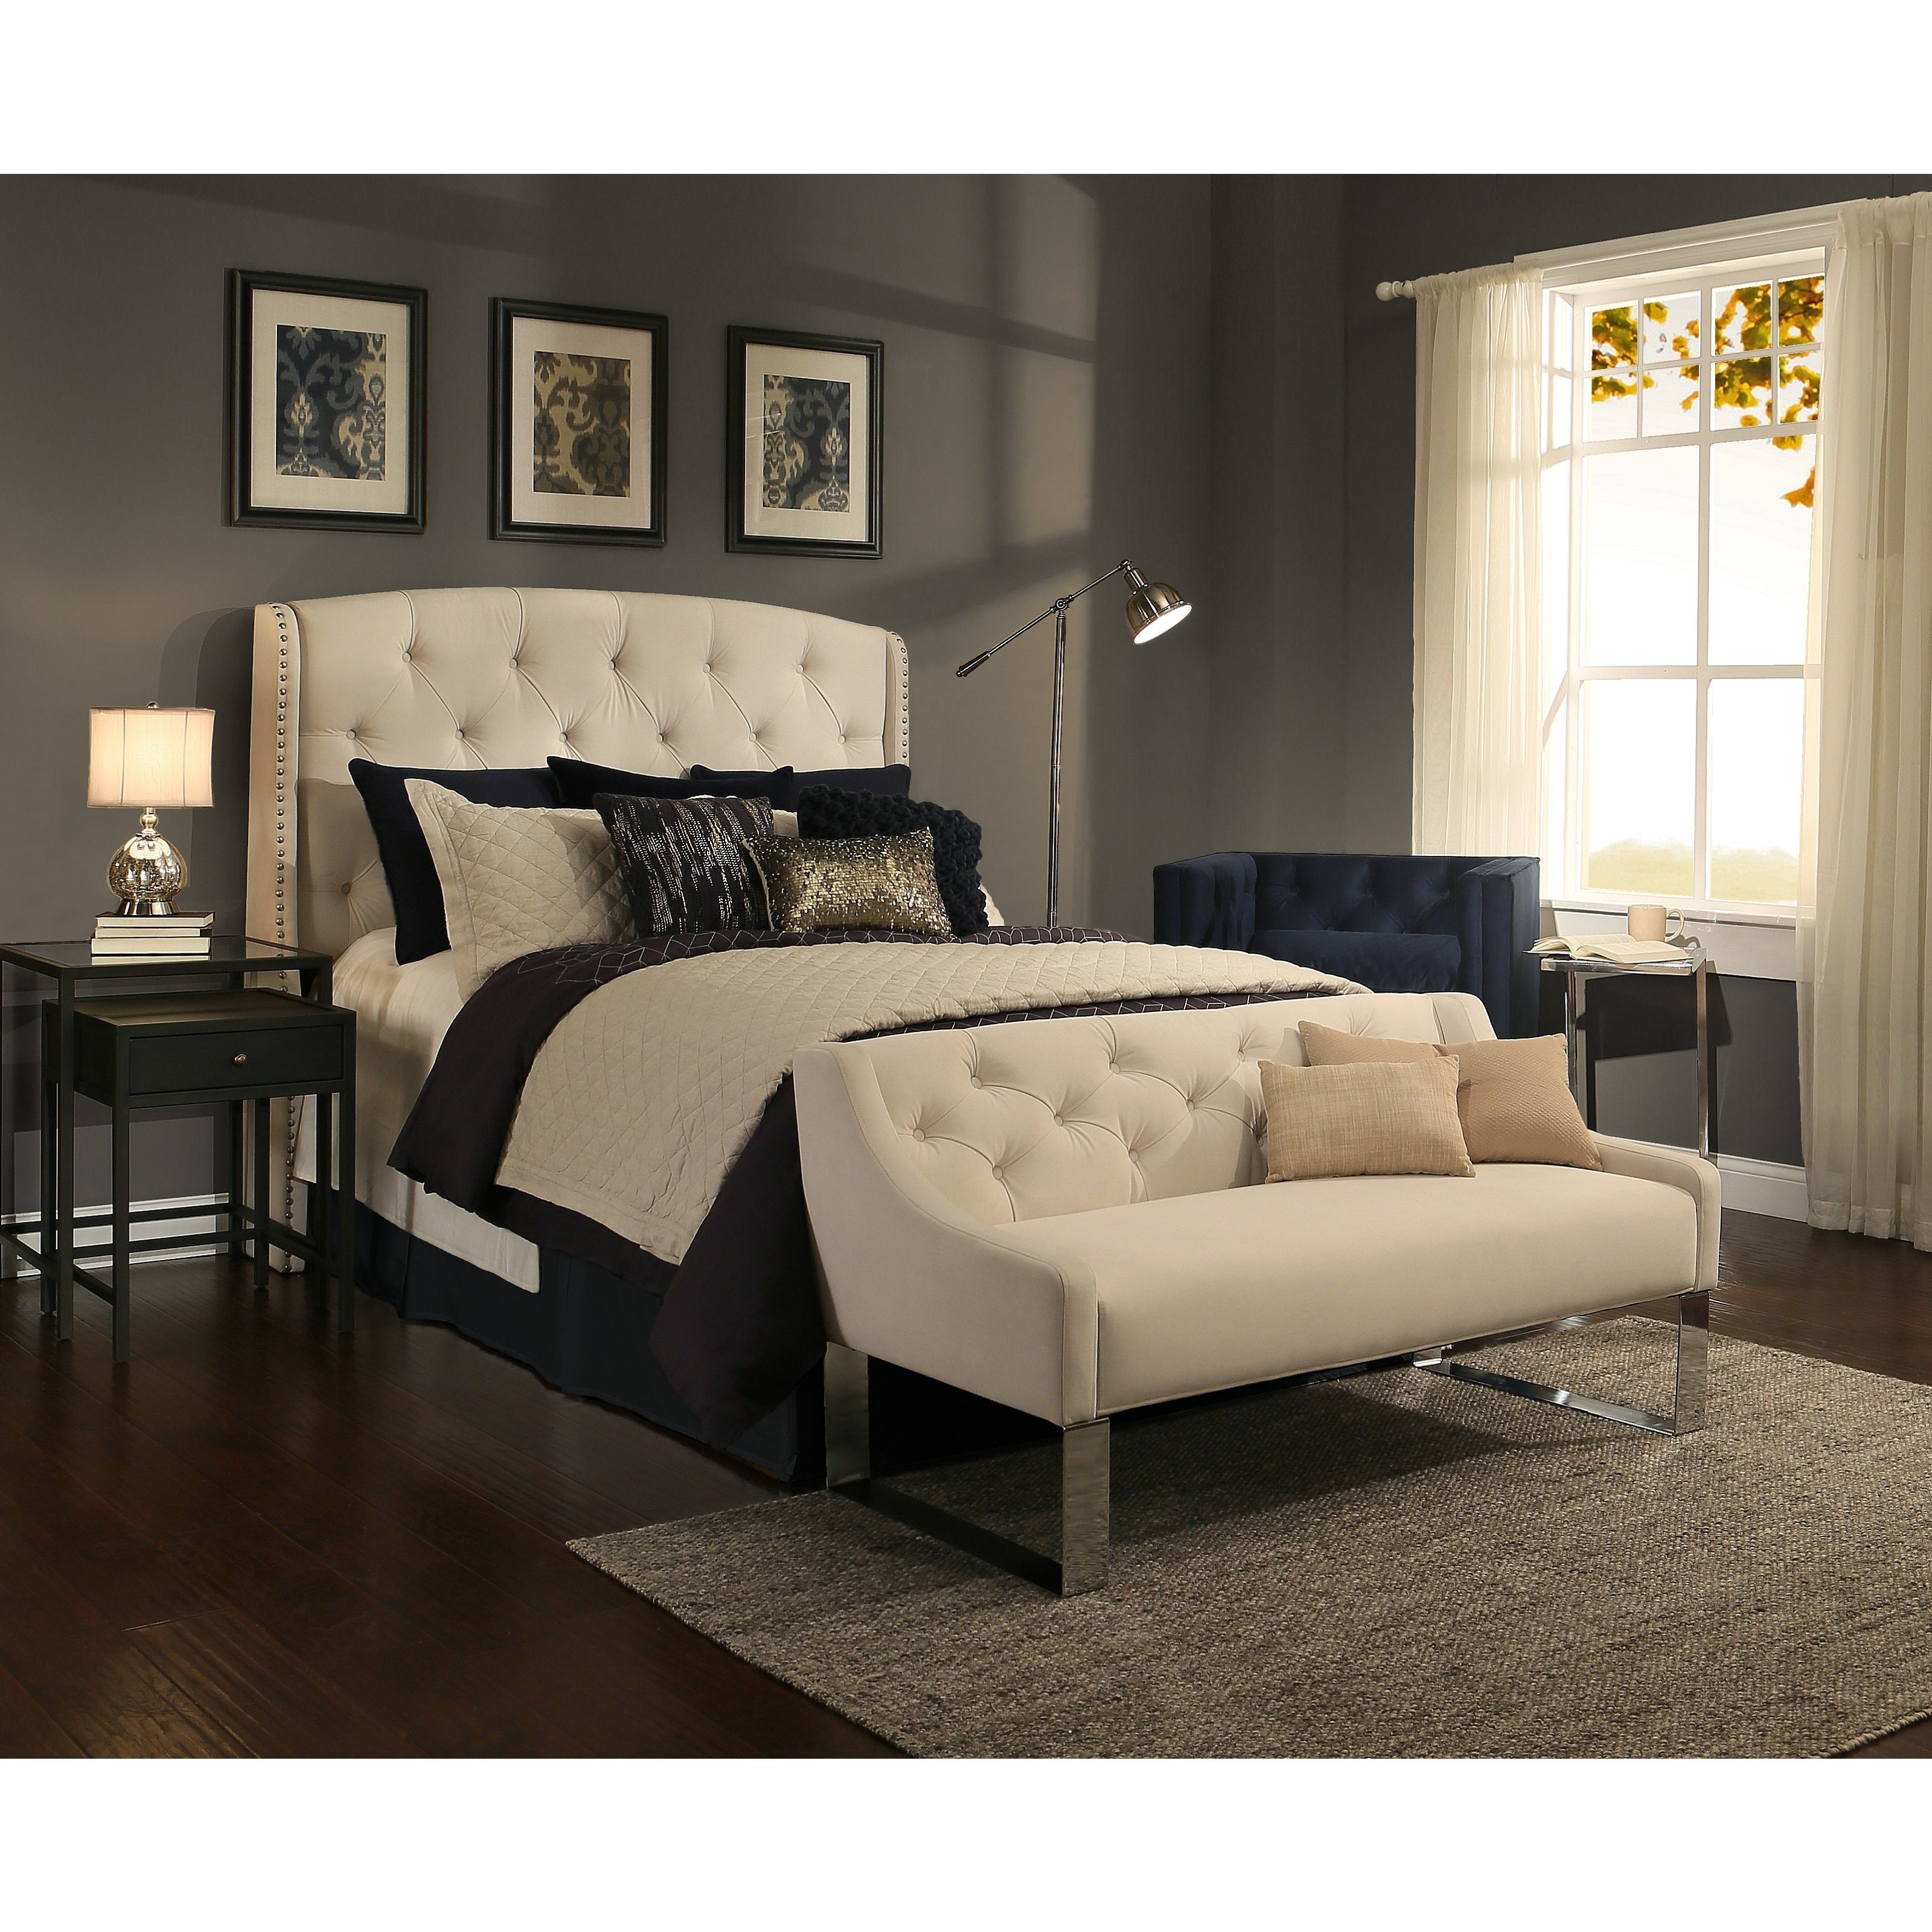 Gracewood Hollow Zusak Ivory Tufted Upholstered Wingback Bedroom Collection With Sofa Bench Option